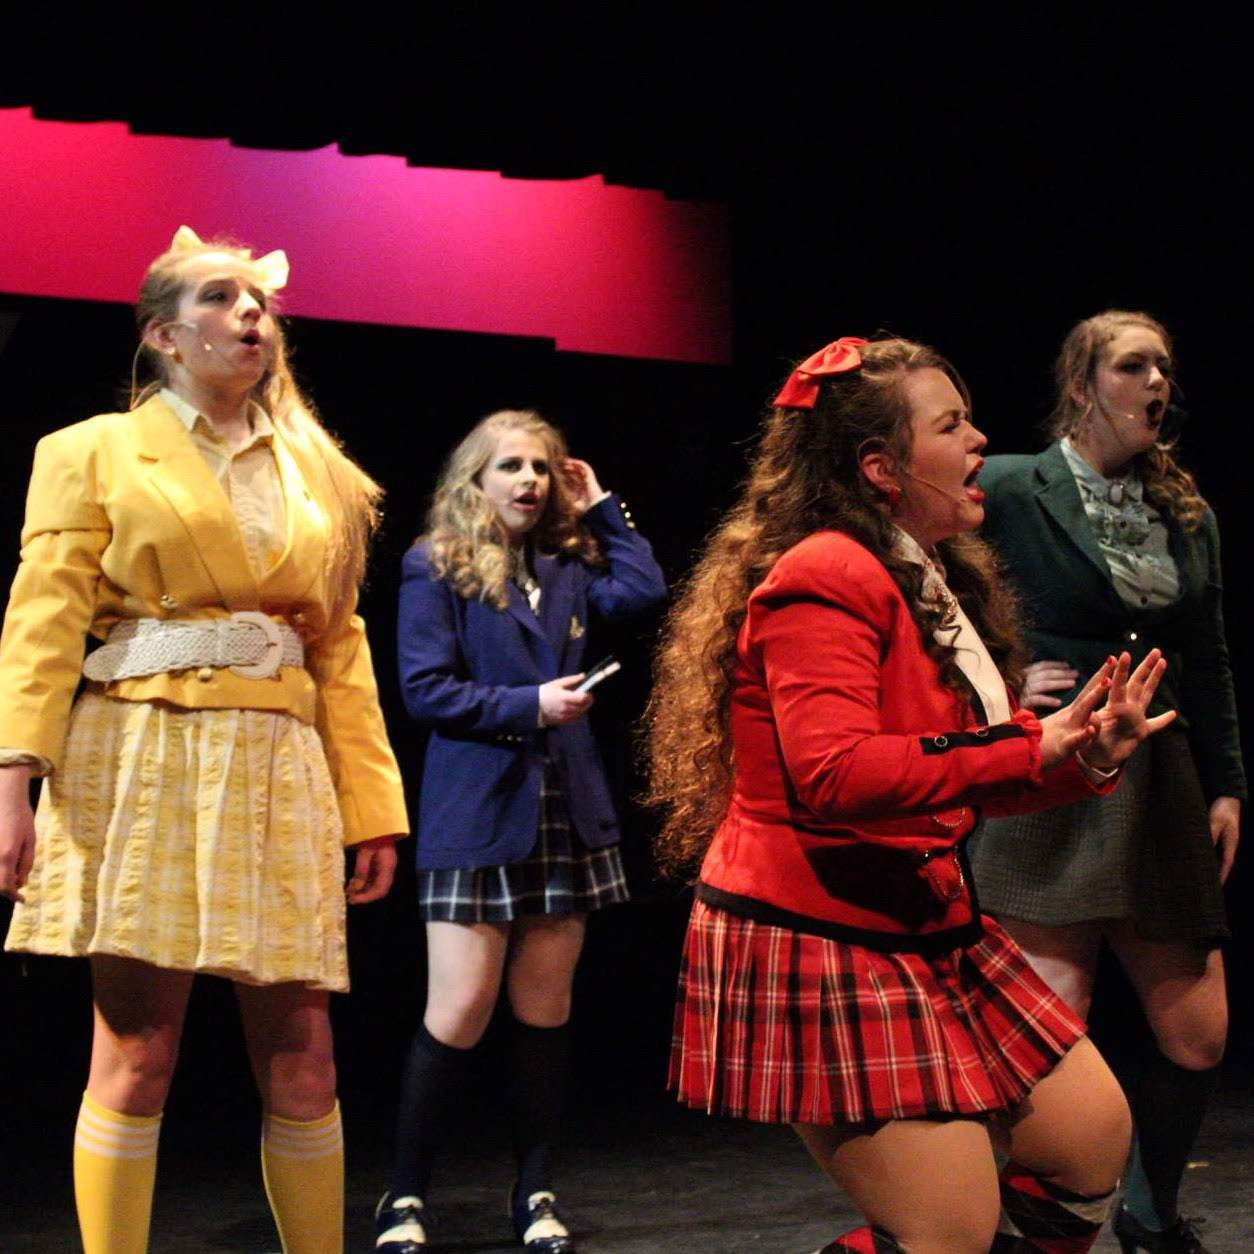 Sarah Enzminger's costume design for the theater production of Heathers